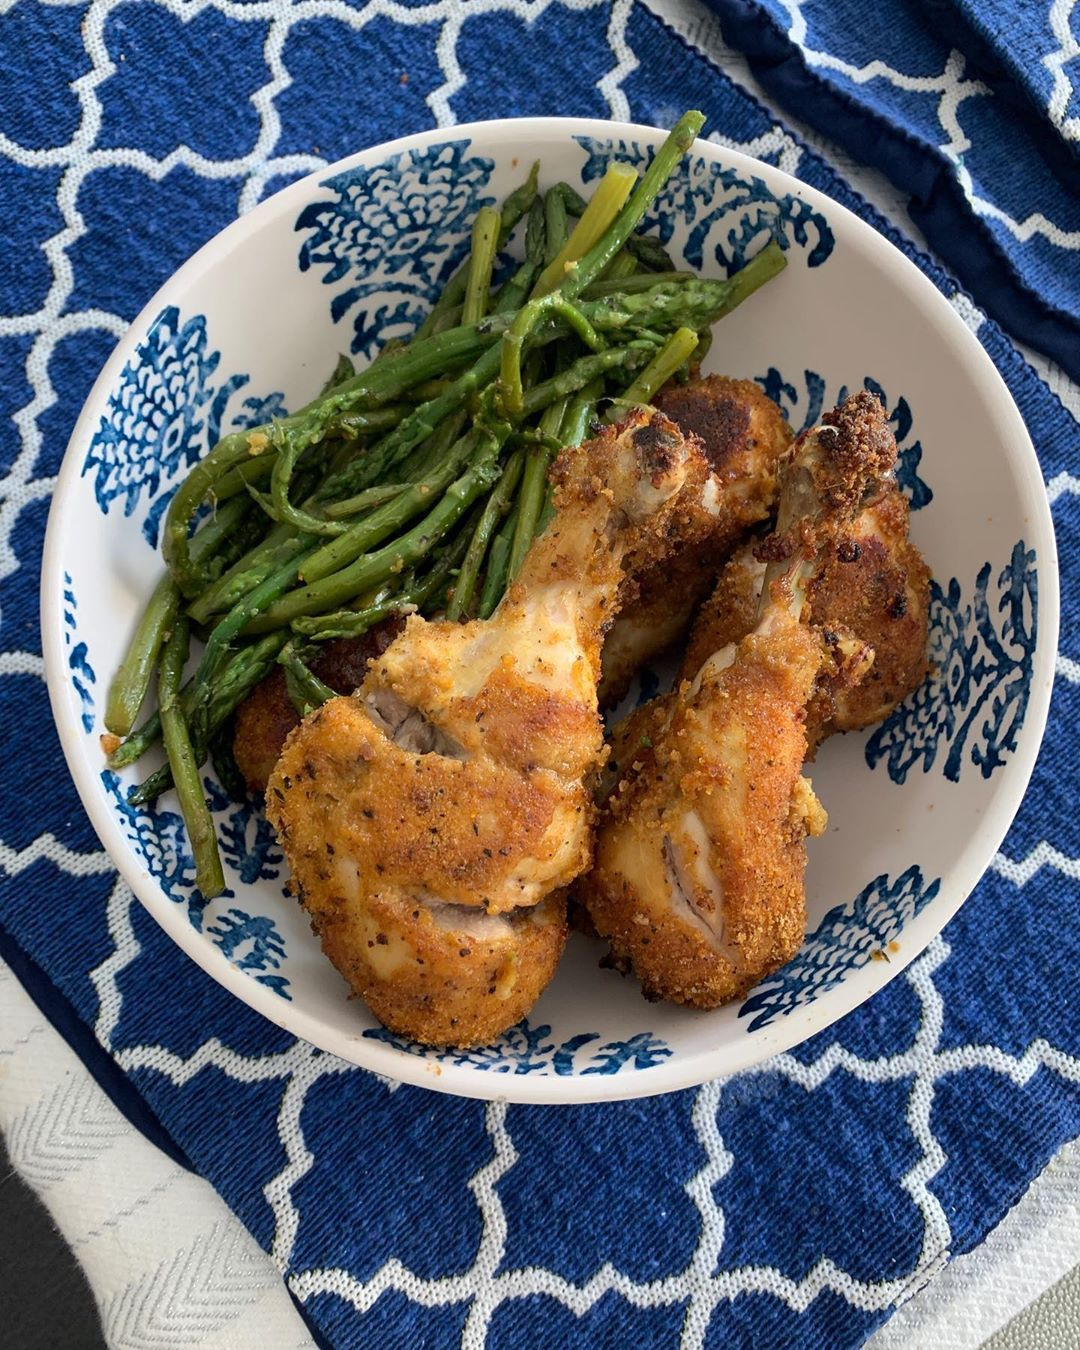 Mama made us some chicken drumsticks and veggies! Perfect simple meal! . . 🍗 . . .